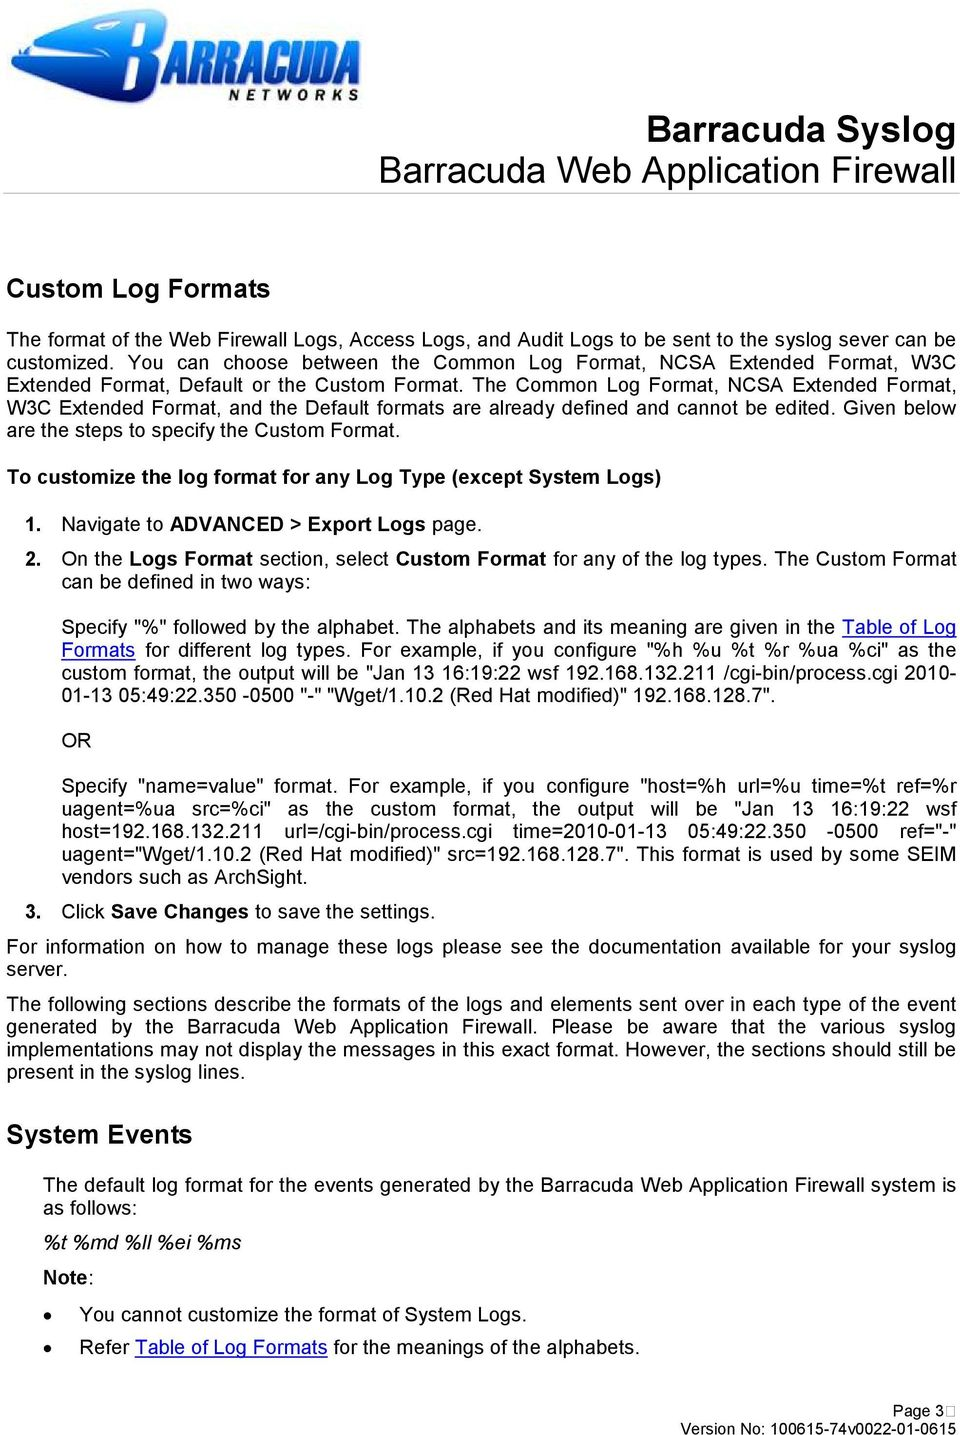 The Common Log Format, NCSA Extended Format, W3C Extended Format, and the Default formats are already defined and cannot be edited. Given below are the steps to specify the Custom Format.